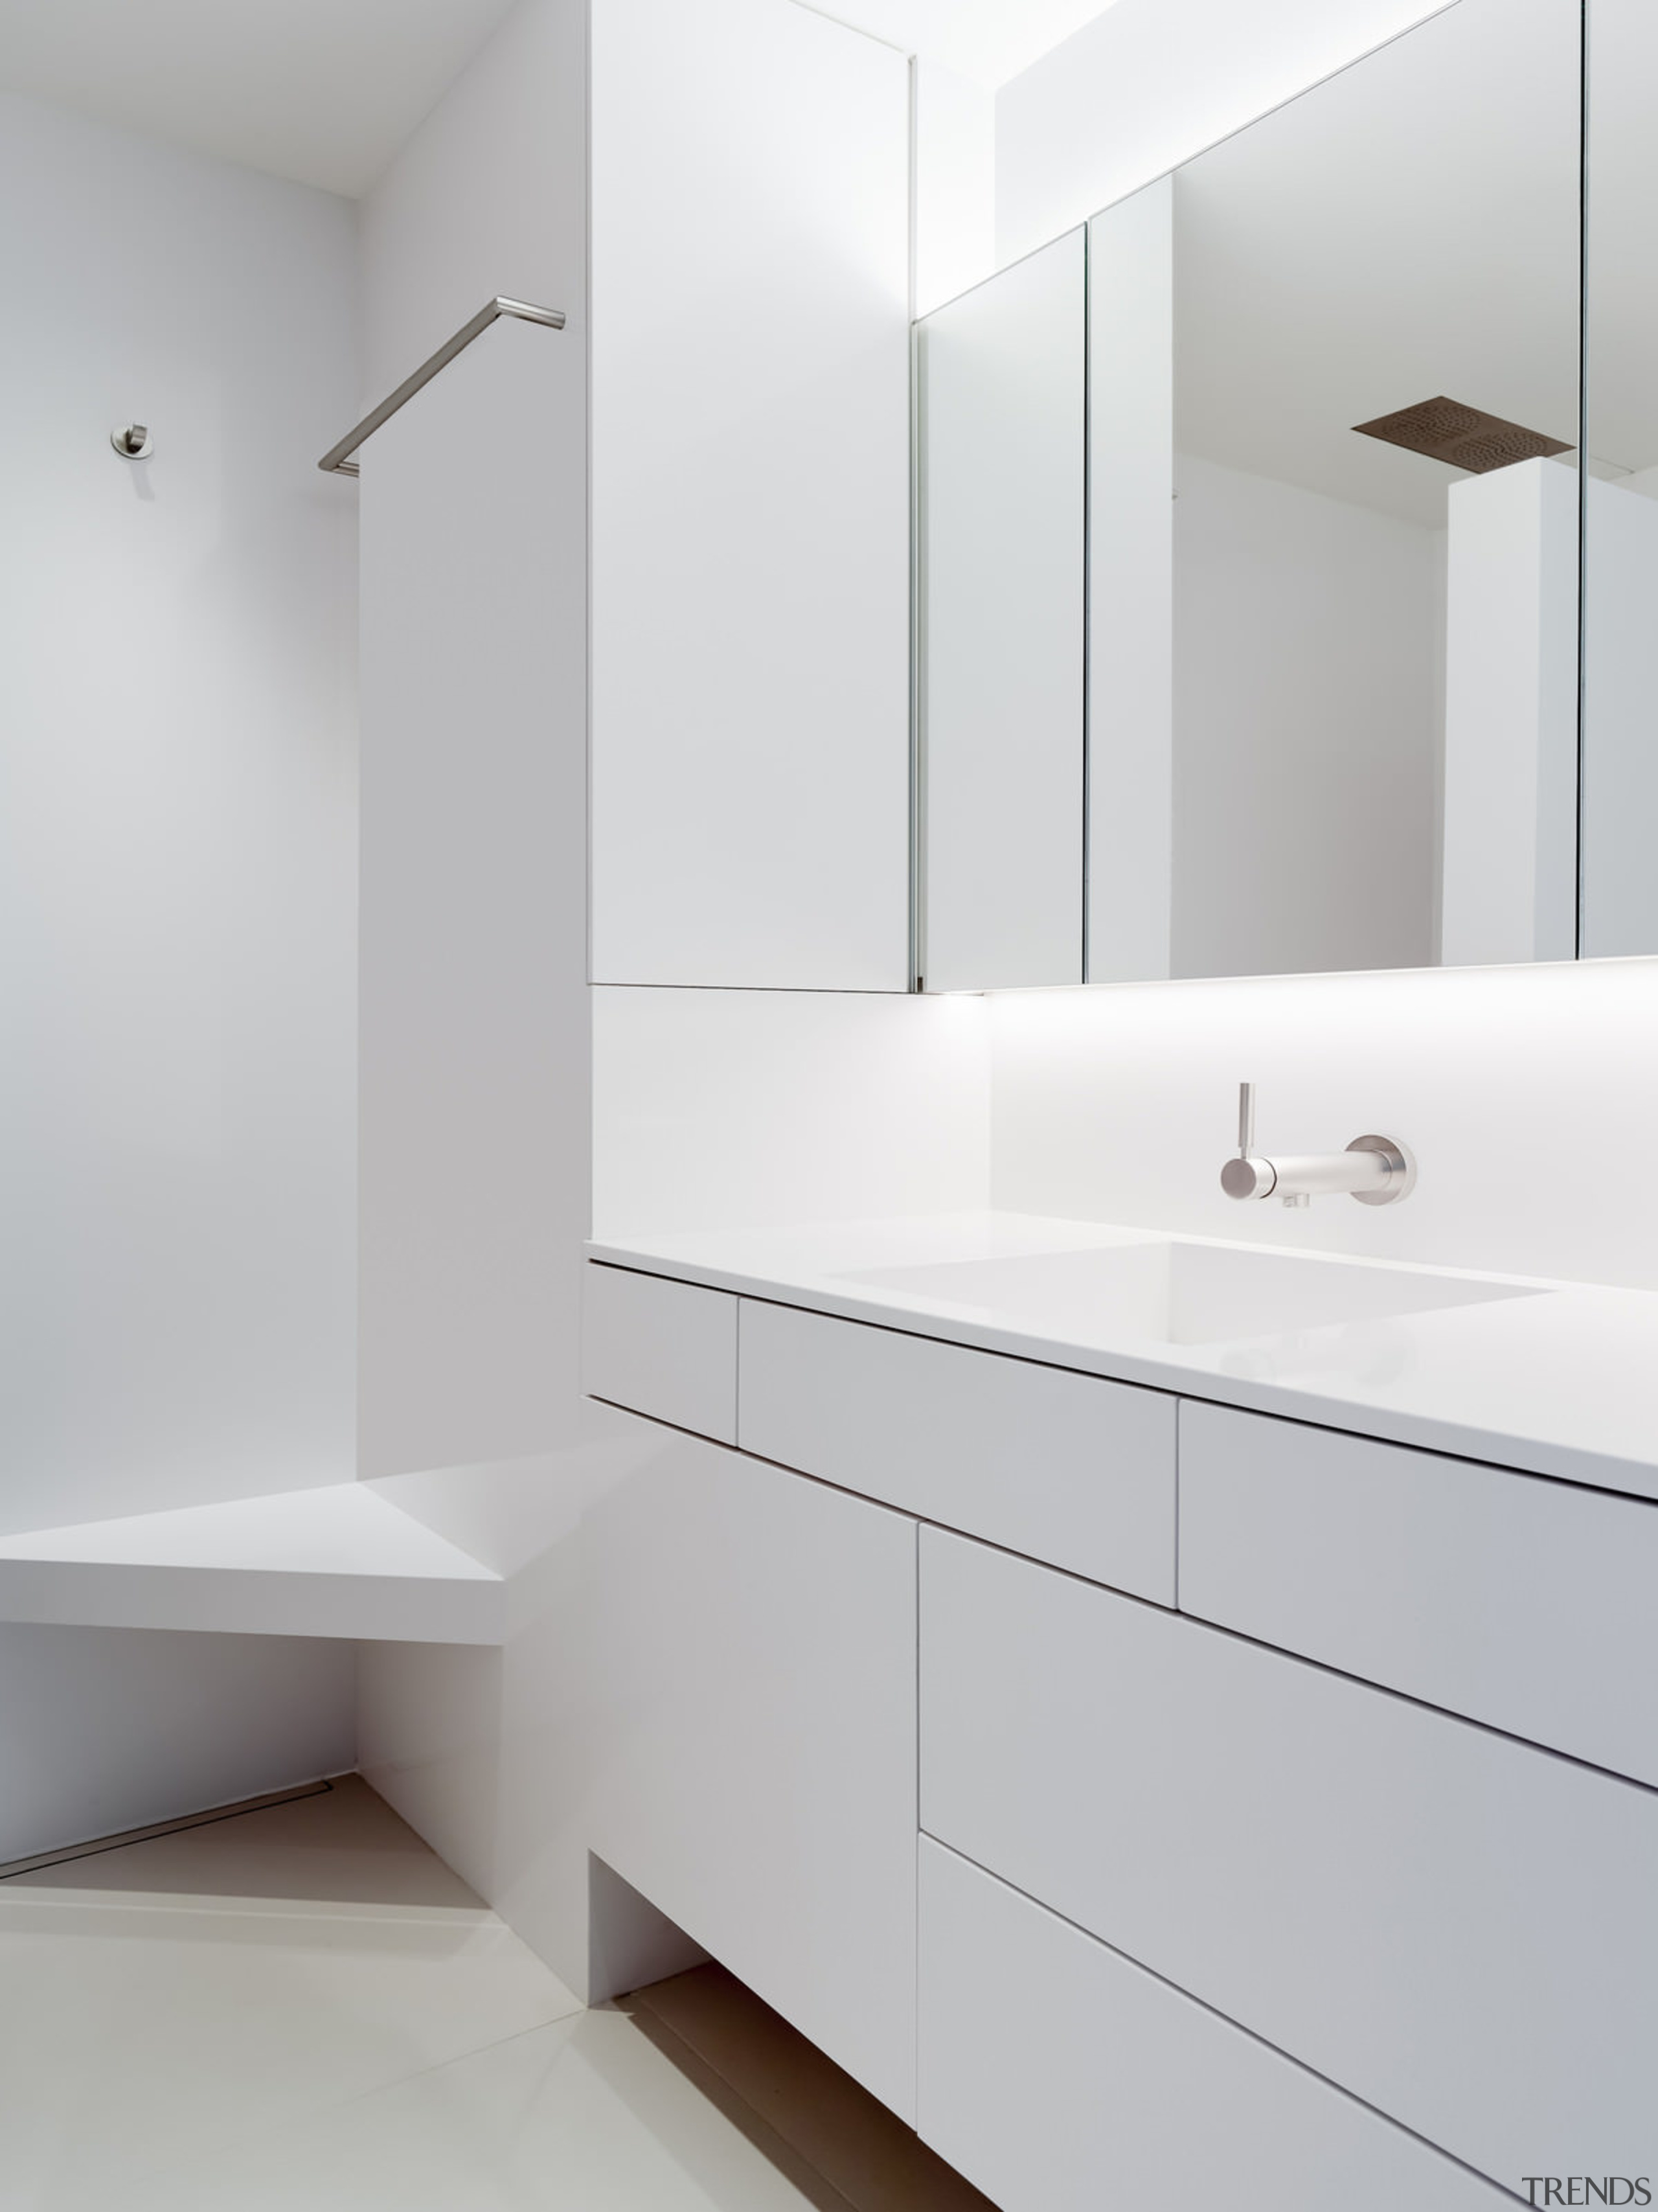 The spacious vanity with ample drawer space - architecture, bathroom, bathroom accessory, bathroom cabinet, bathroom sink, floor, interior design, plumbing fixture, product design, room, sink, tap, wall, gray, white